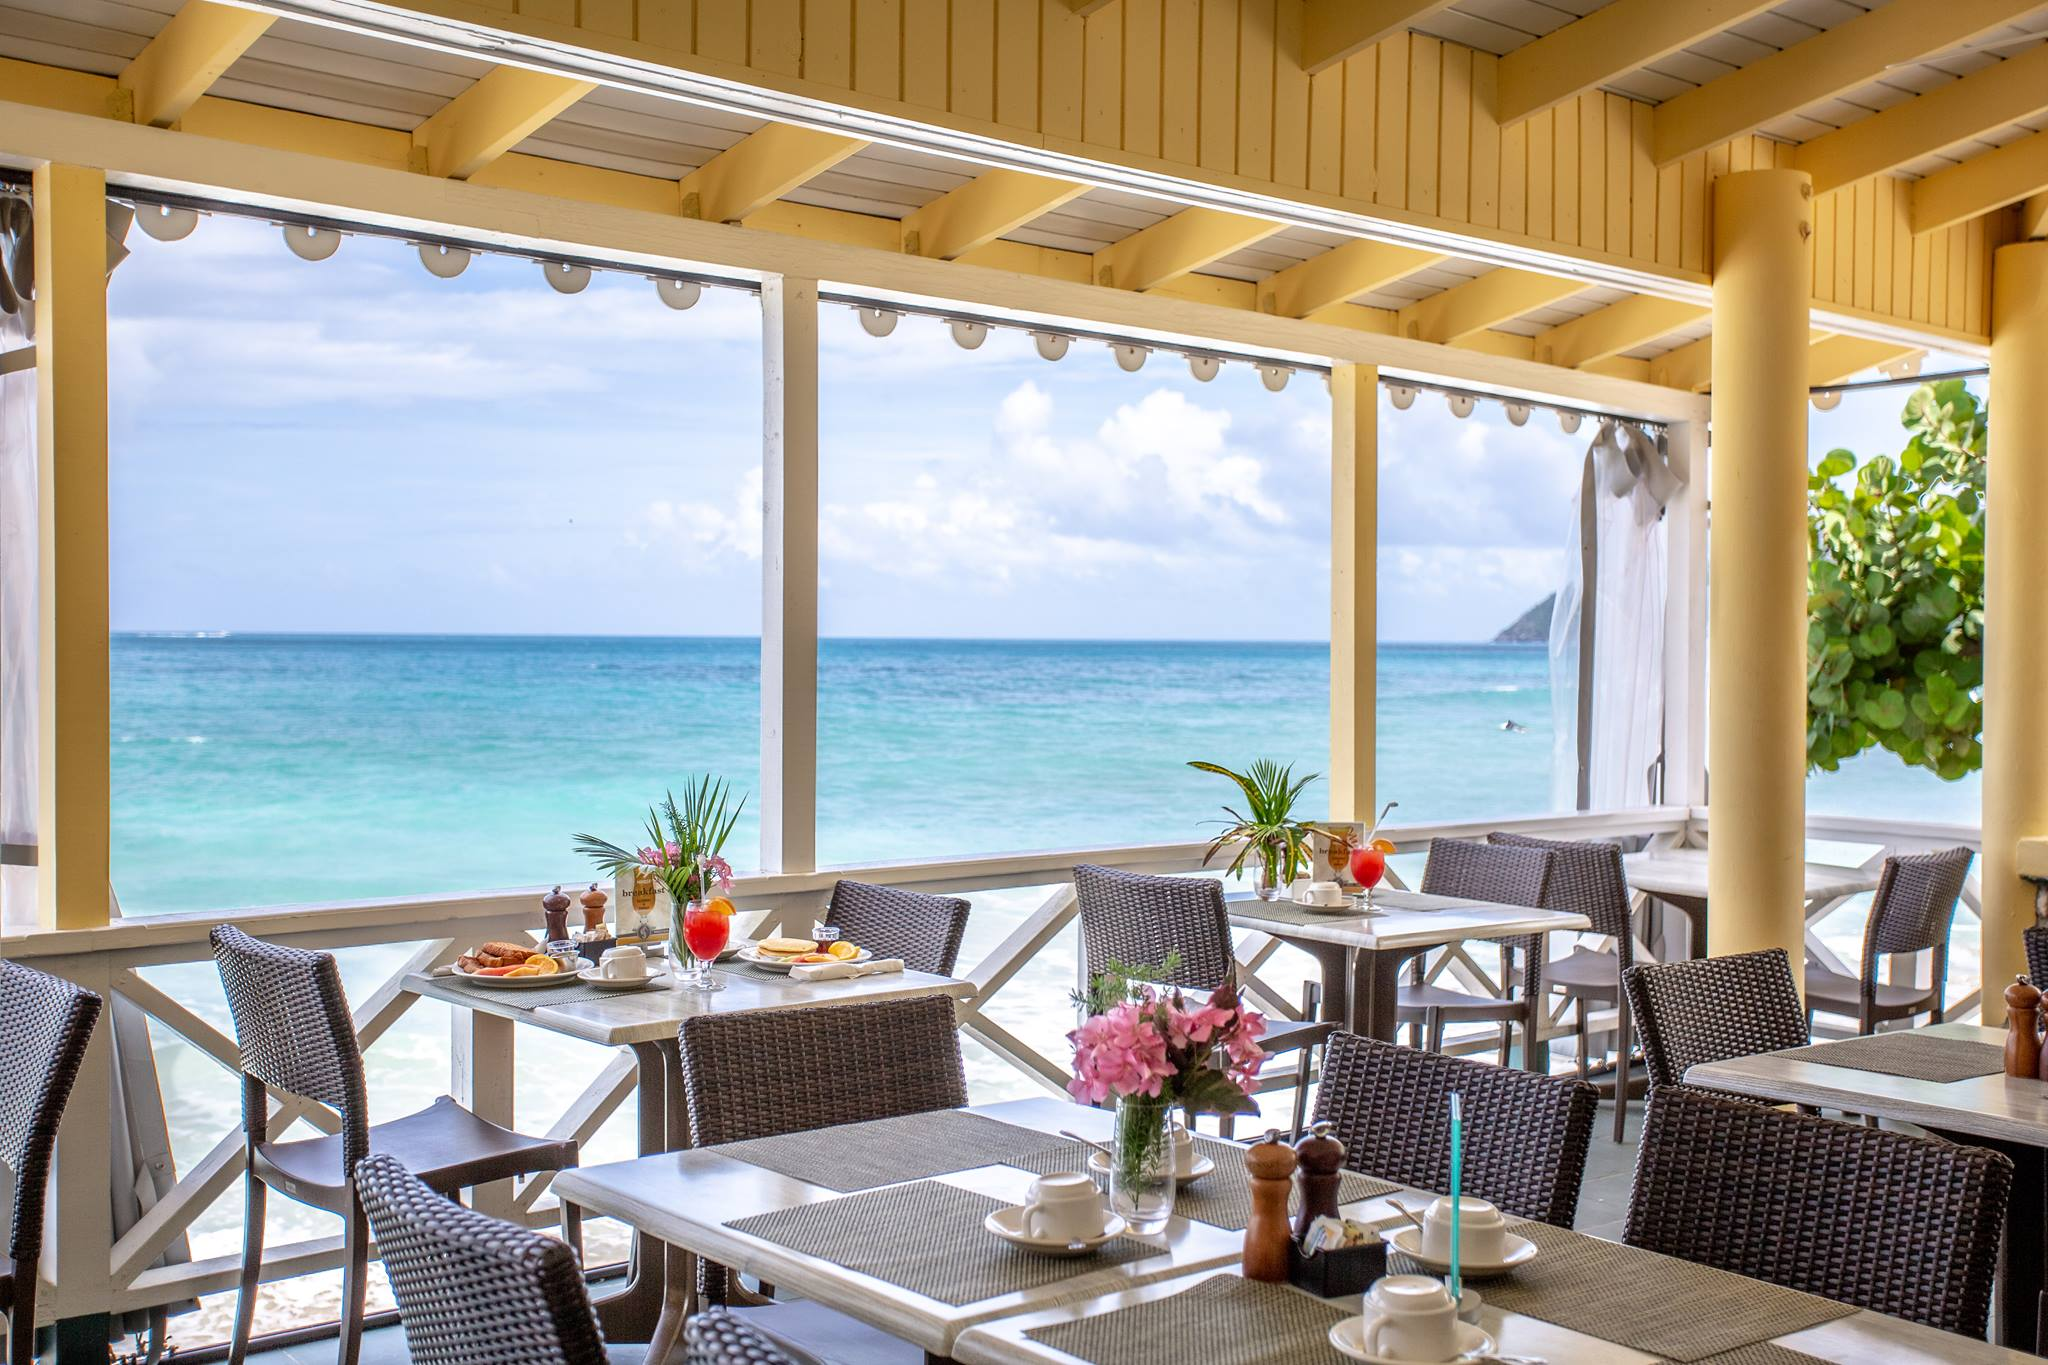 Sebastian's | Light House Marina-BVI | Snag-A-Slip